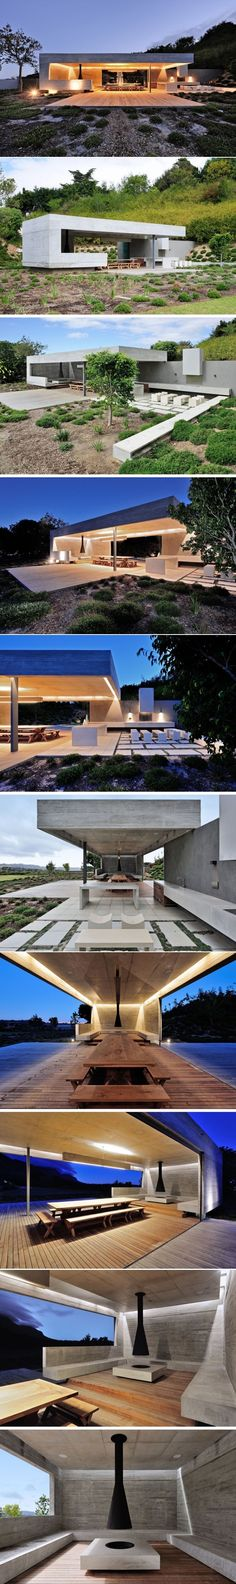 This Concrete Garden Pavilion Was Designed With Multiple Areas For Entertaining | CONTEMPORIST